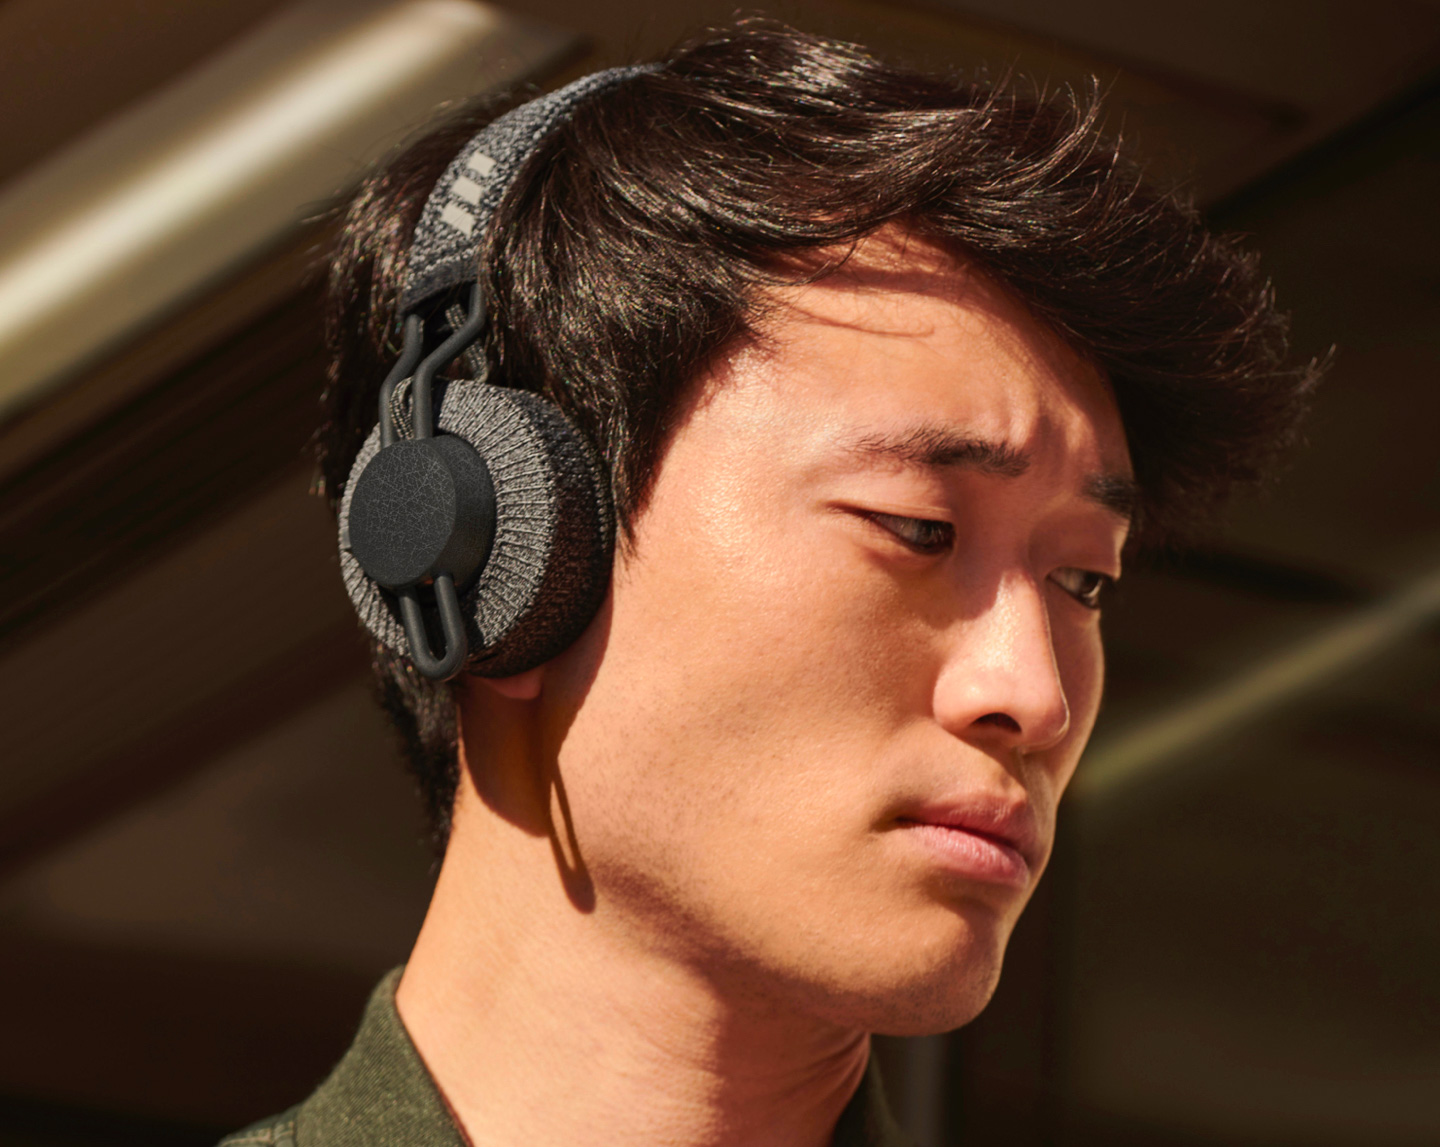 Adidas & Zounds Partner Up On Athlete-Approved Sport Headphones at werd.com